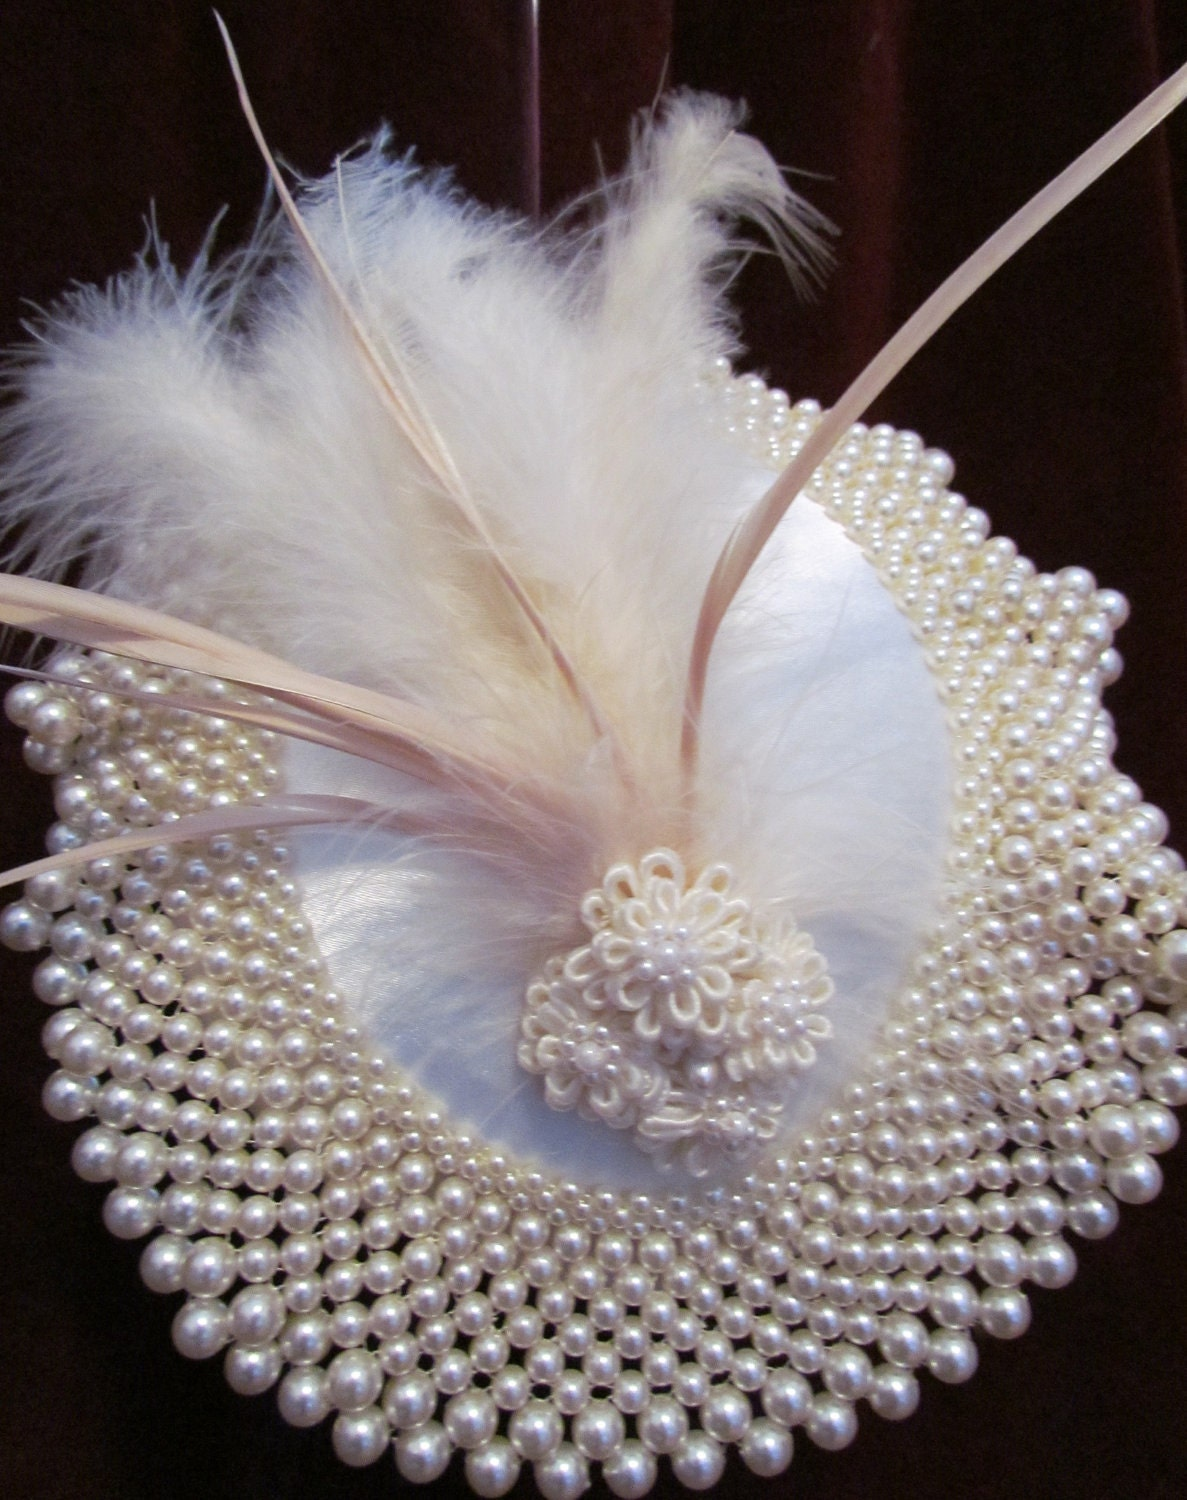 Hat of Pearls, pearl bib, pearl and satin flowers, white feathers, goose biot feathers, headband - CouturePlumes